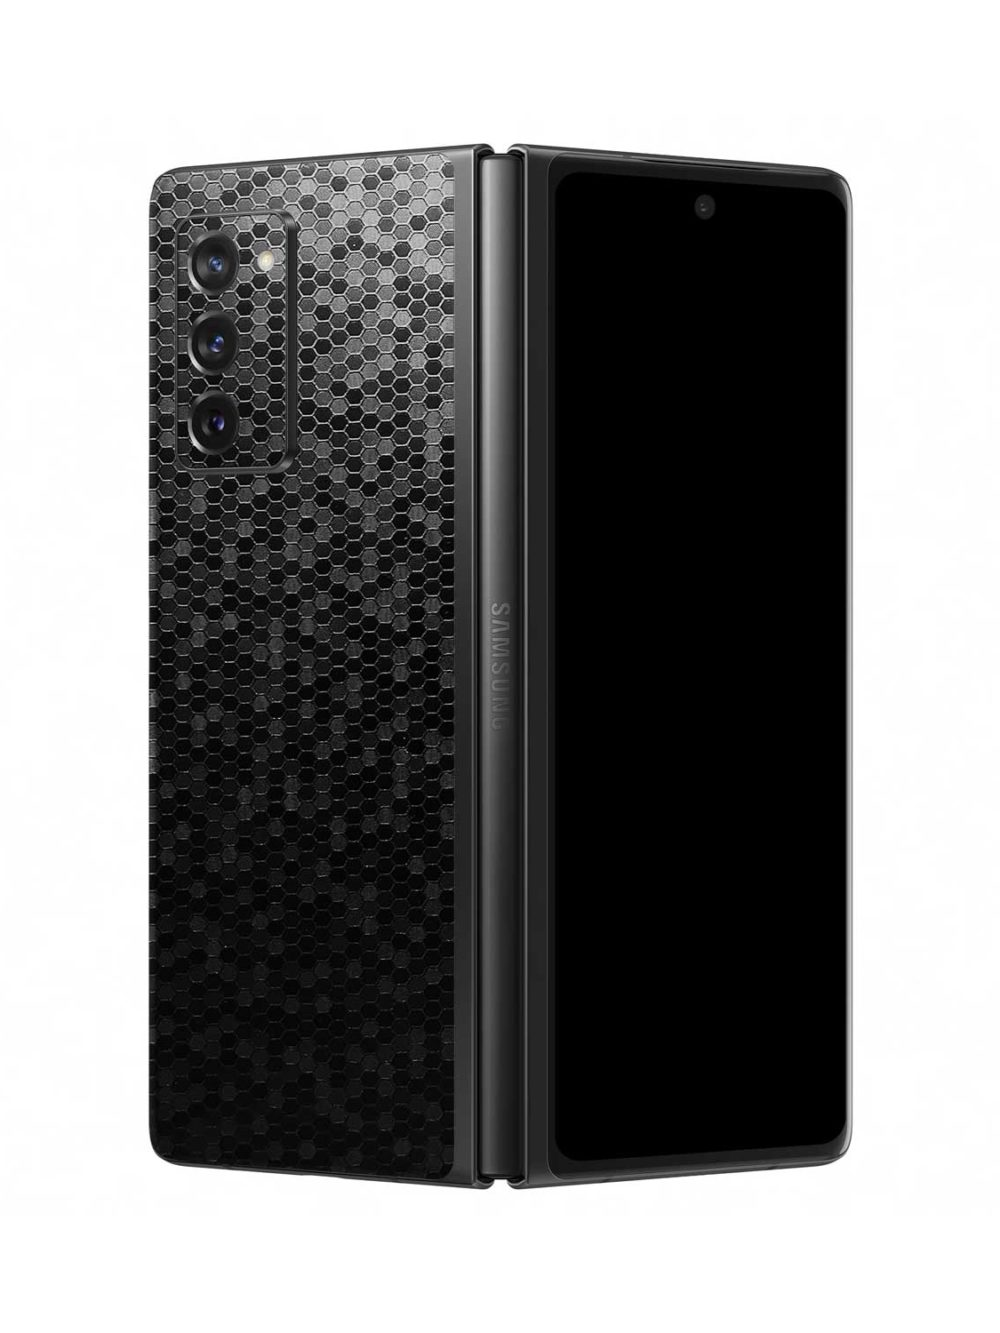 3D Textured Black Honeycomb Skin for Samsung Galaxy Z Fold2